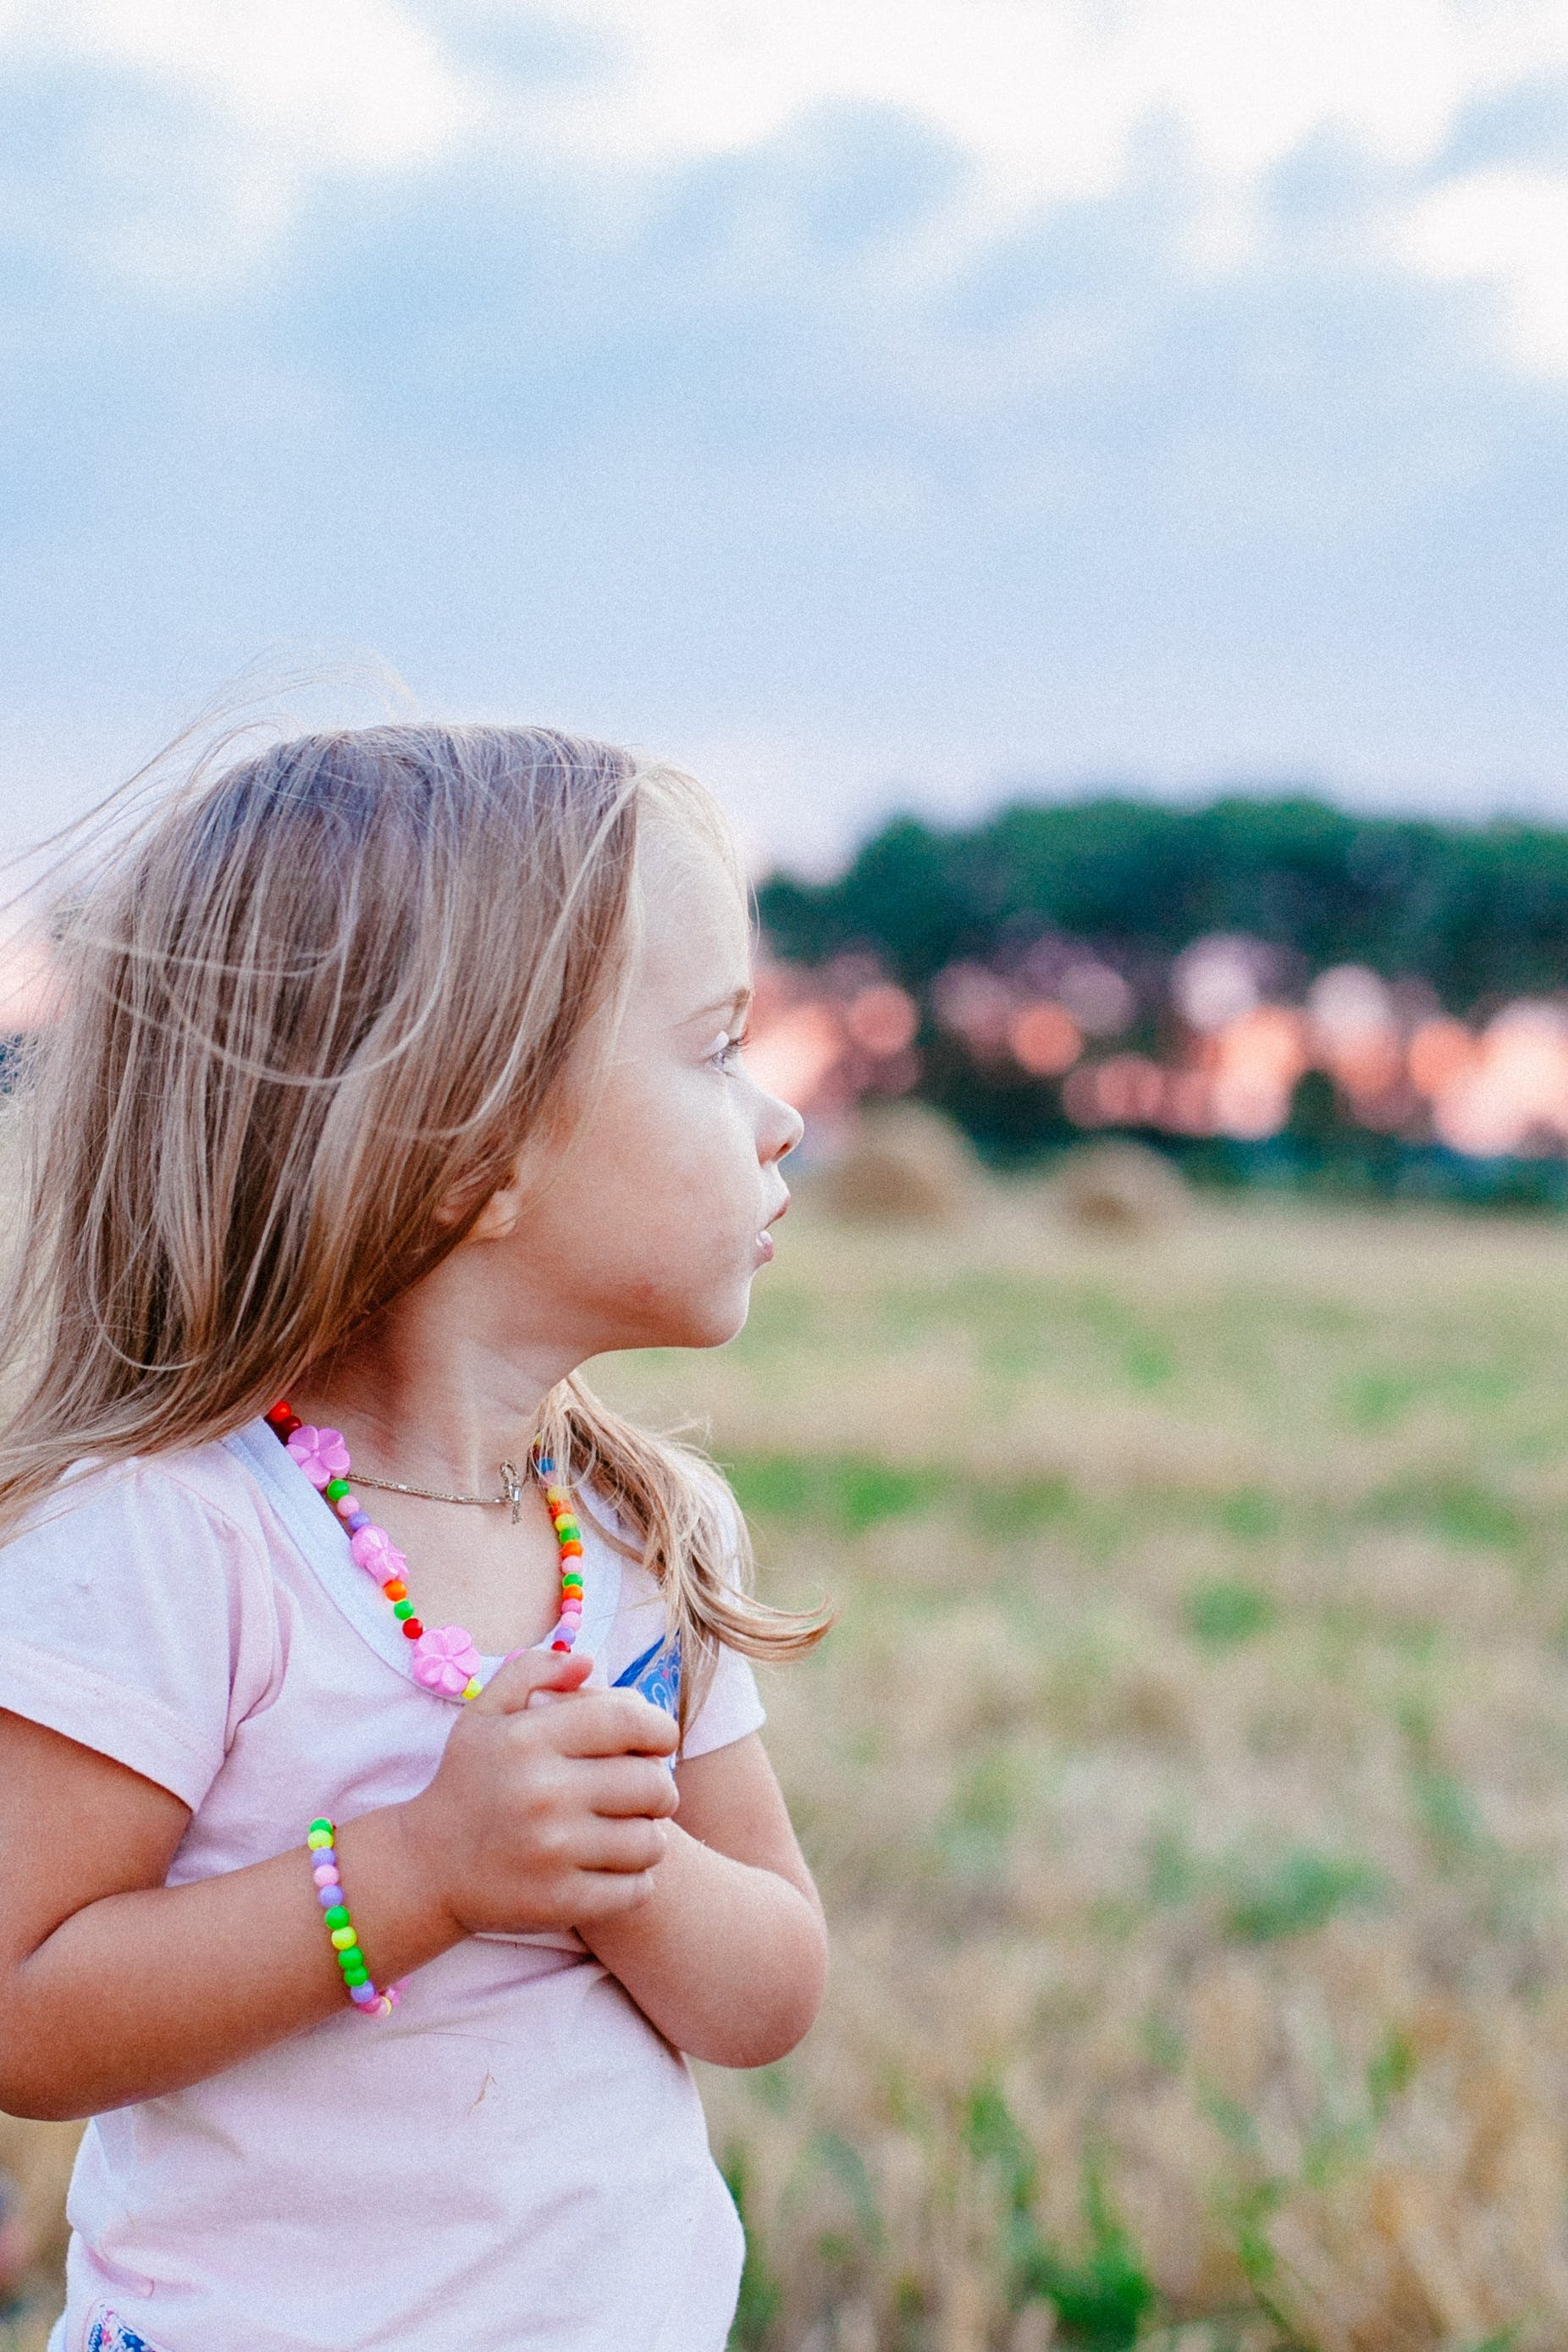 Selective Focus Photography of Girl on Grass Field